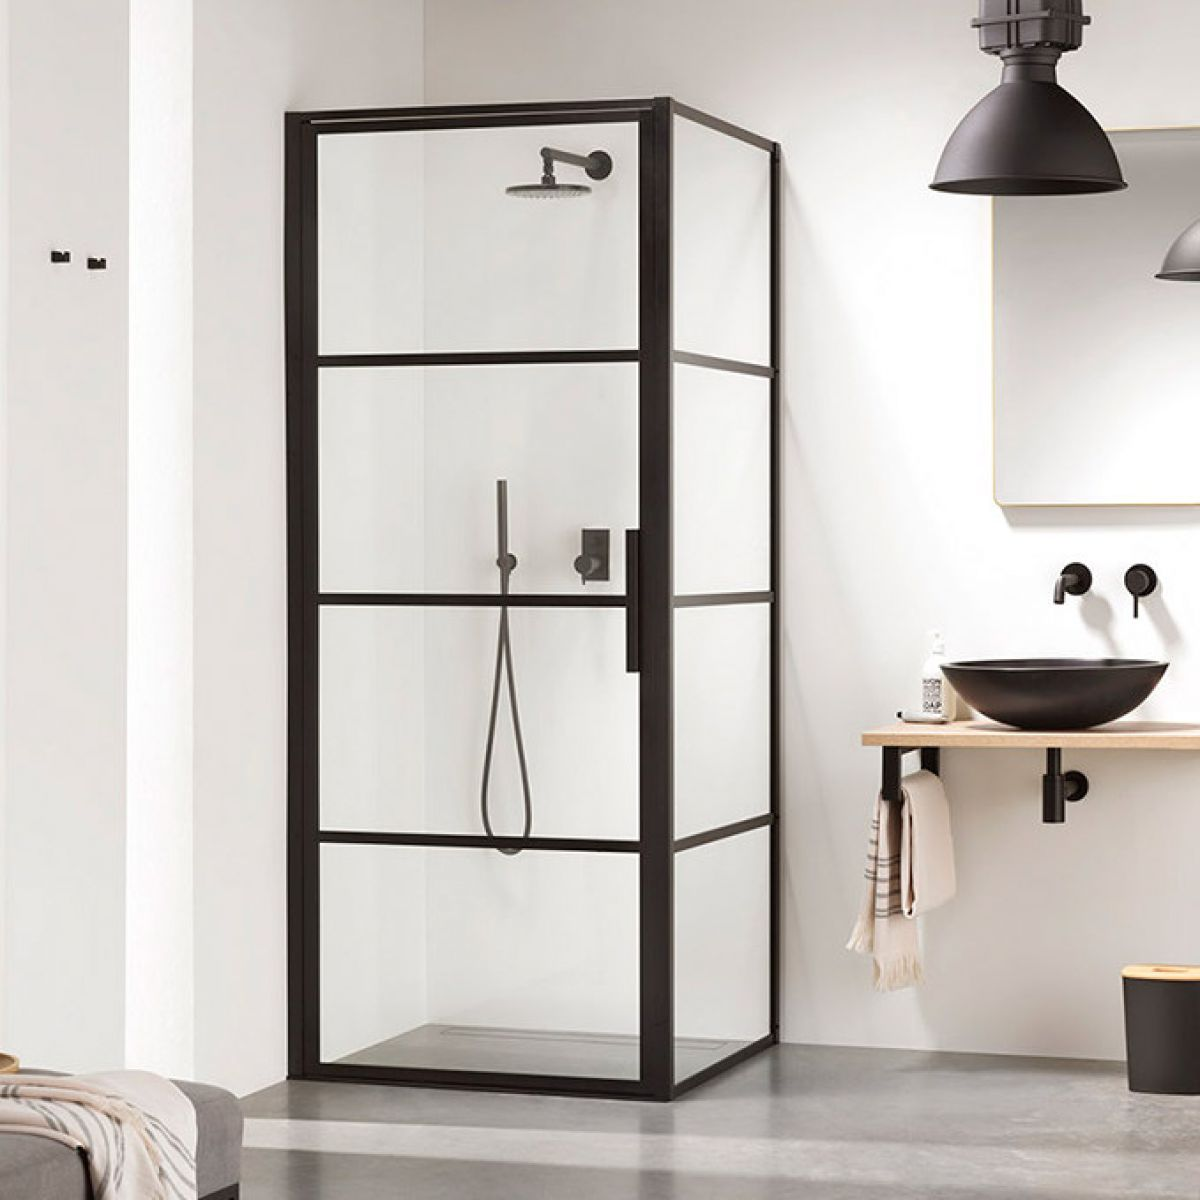 Impey Soho Pivot Door Black Shower Enclosure Uk Bathrooms